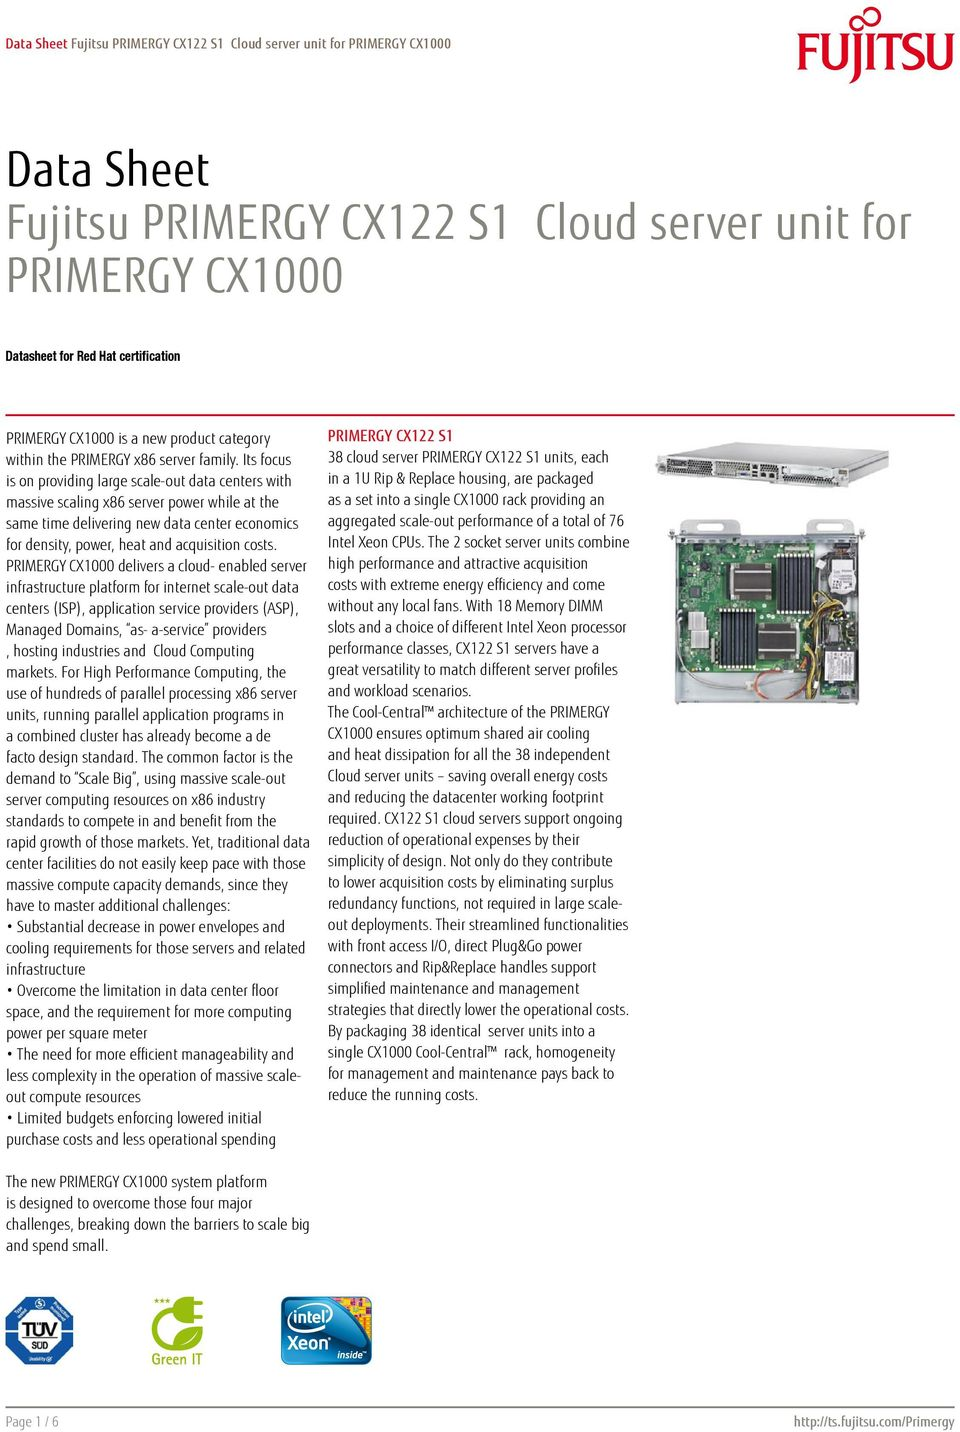 PRIMERGY CX1000 delivers a cloud- enabled server infrastructure platform for internet scale-out data centers (ISP), application service providers (ASP), Managed Domains, as- a-service providers,